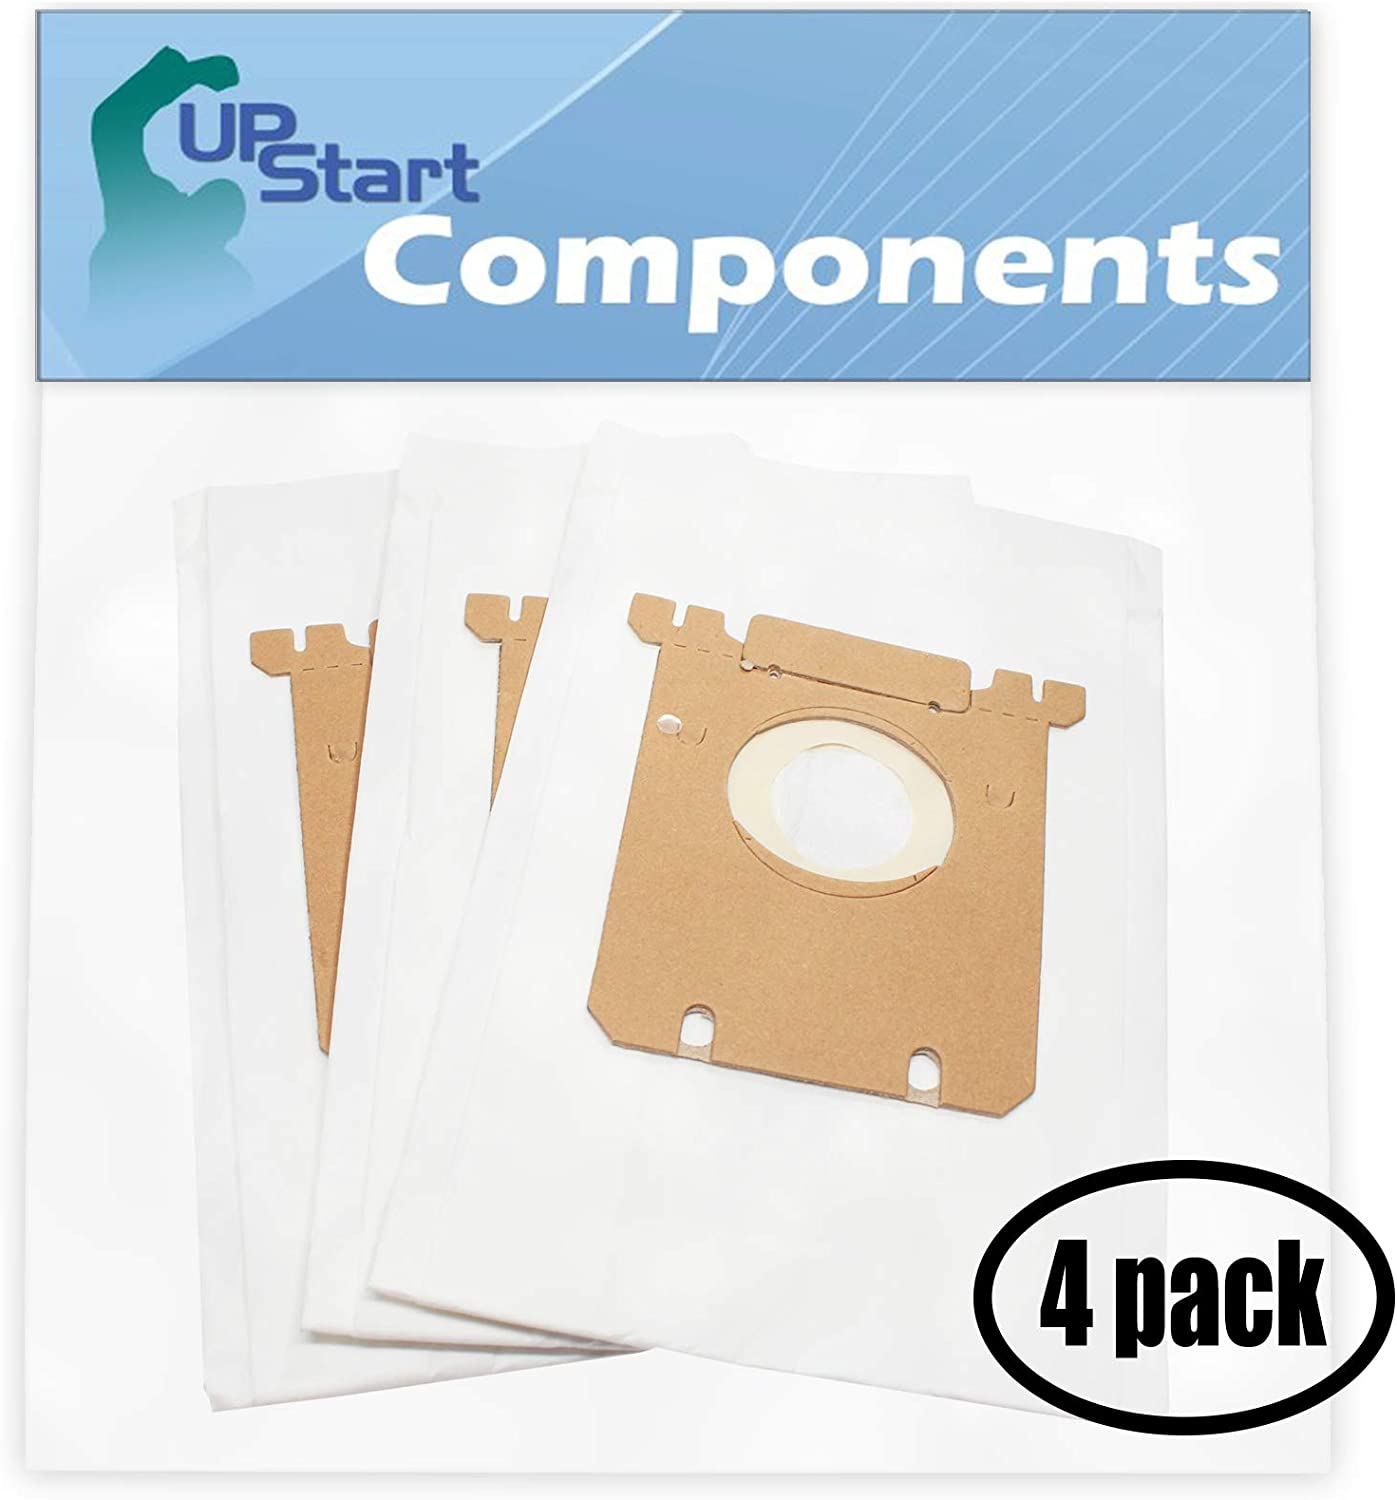 Upstart Battery 12 Replacement for Eureka 6982A Style S Vacuum Bags - Compatible with Eureka 61230F, OX Vacuum Bags (4-Pack - 3 Vacuum Bags per Pack)